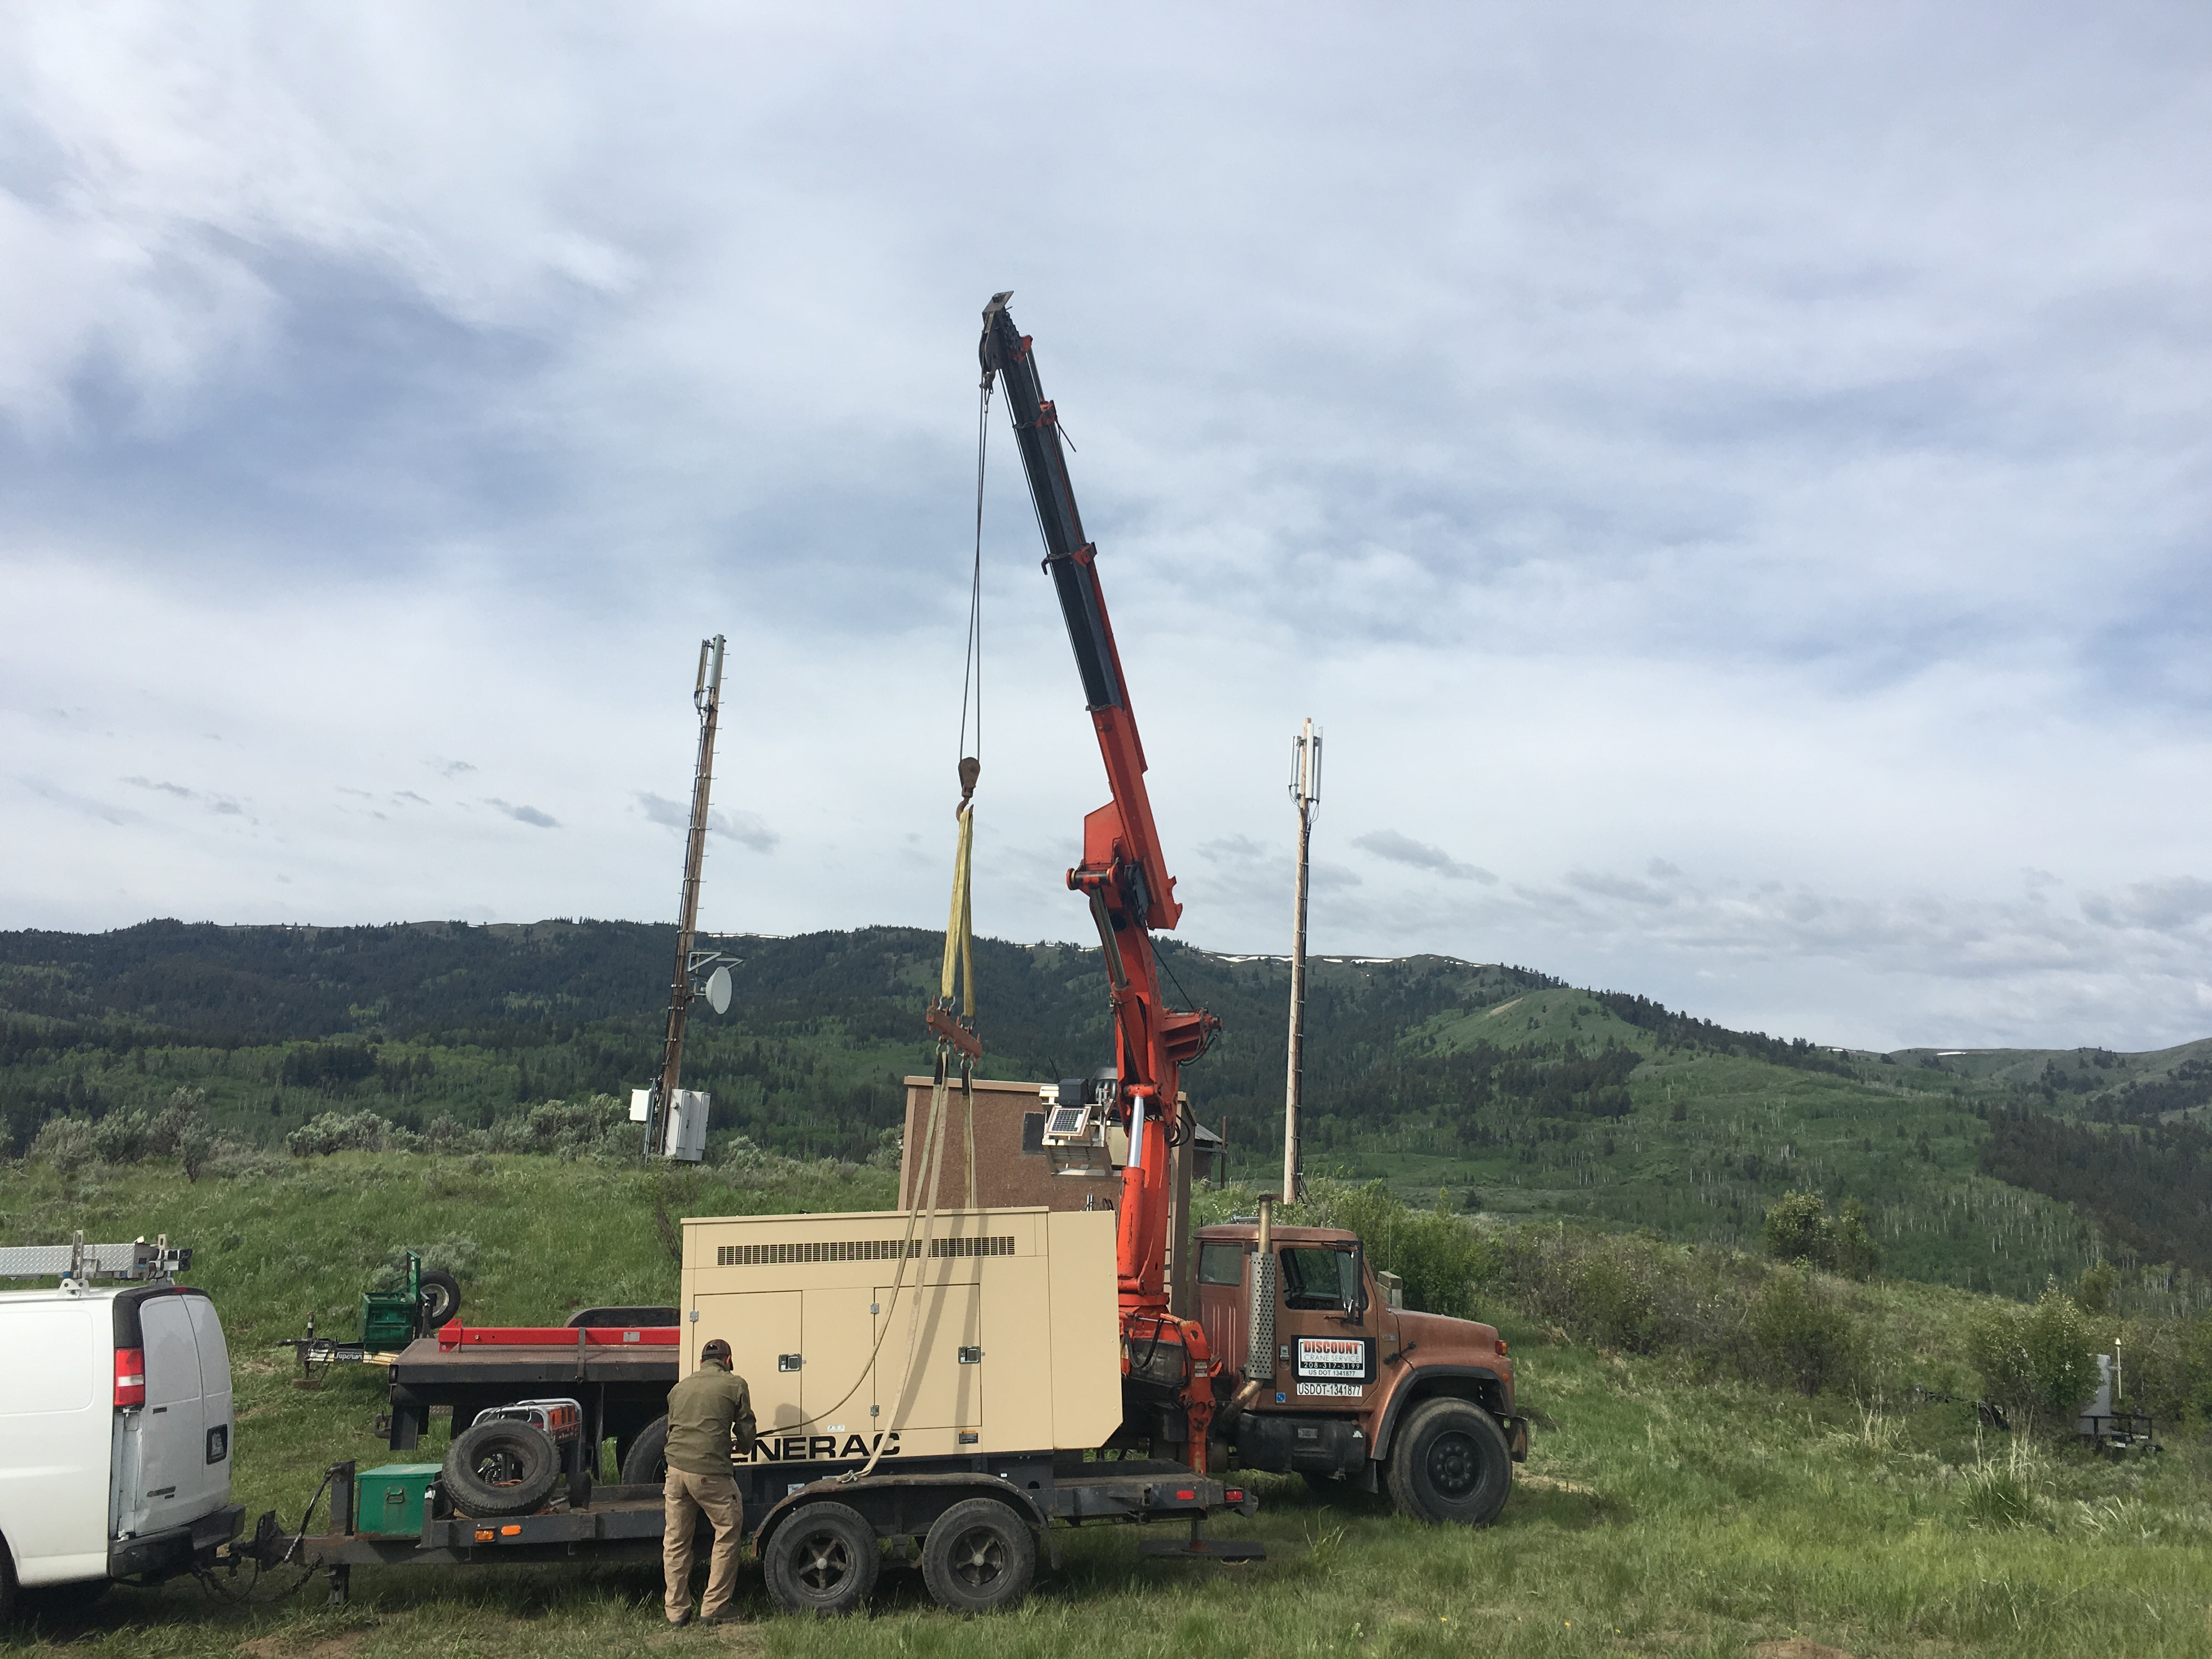 20-ton Palfinger Knuckle boom truck (Remote Controlled) 72' stick